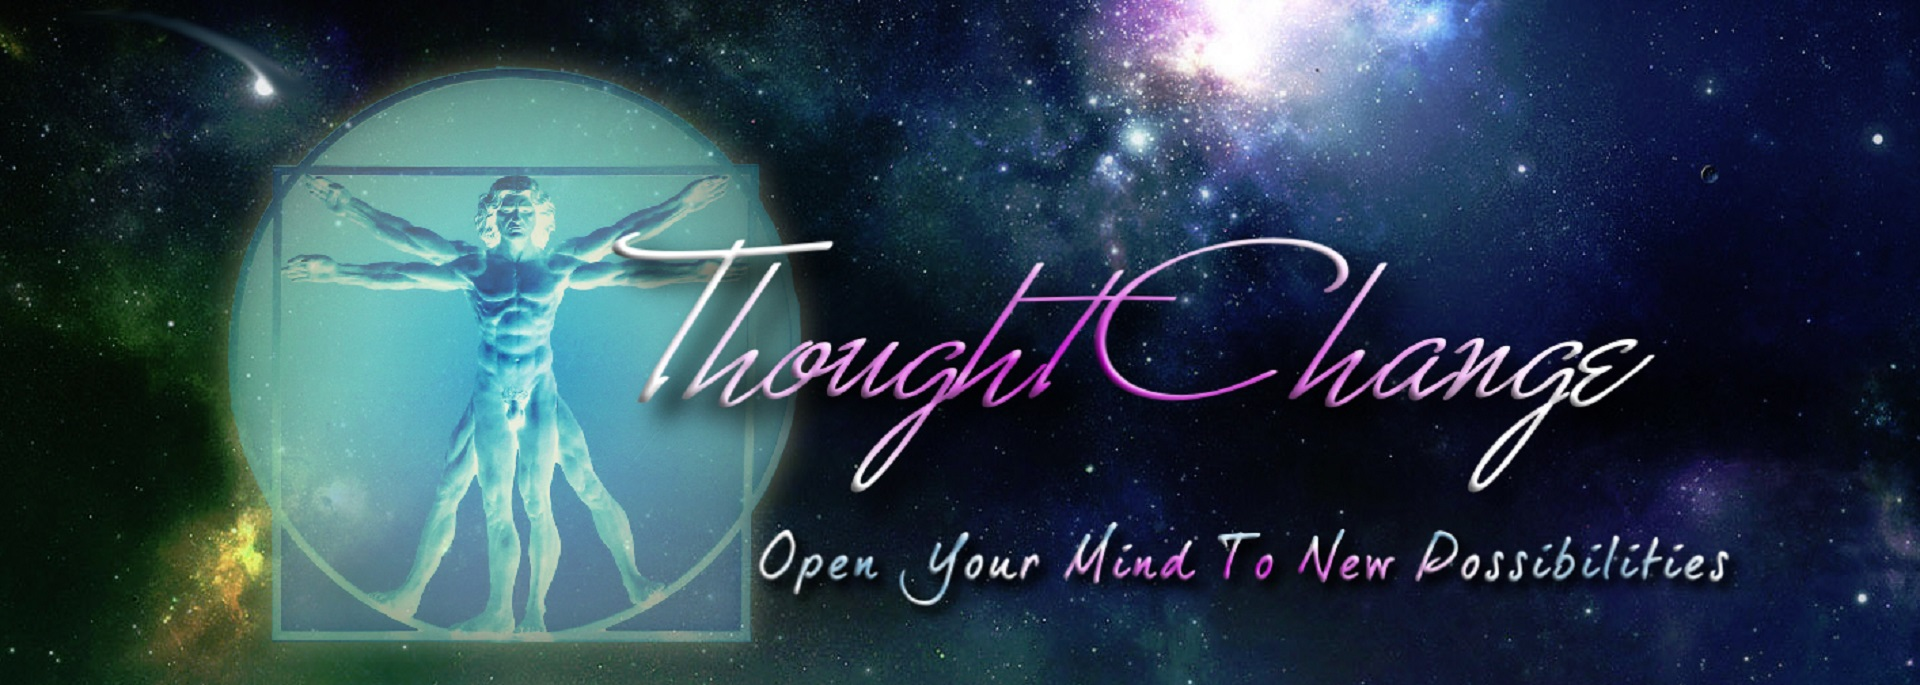 Thought Change banner